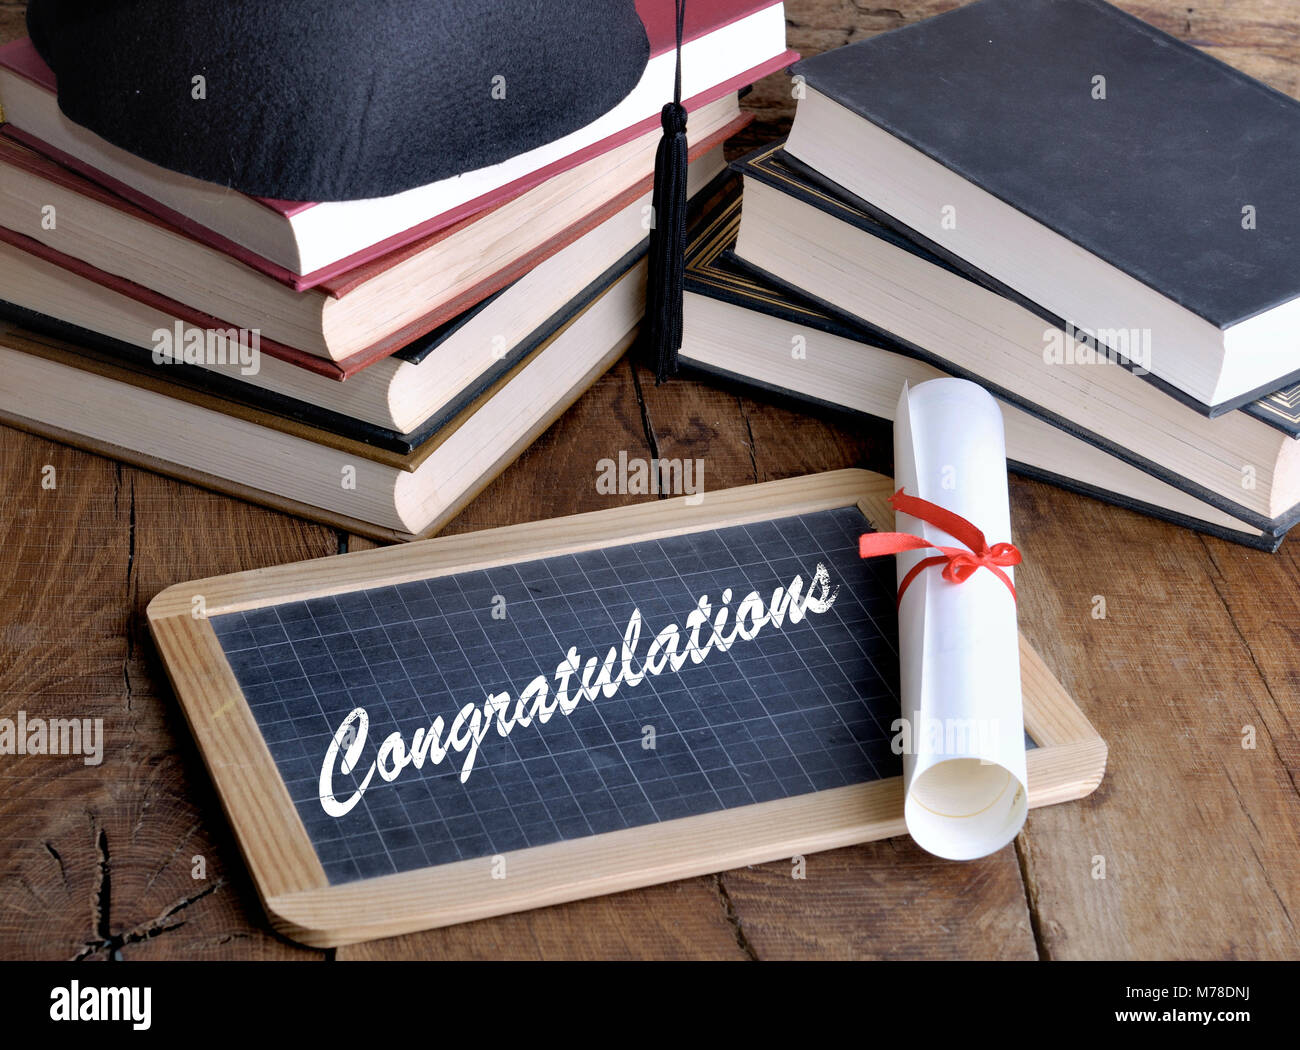 congratulations written on a slate with diploma, books and hat on wooden background - Stock Image